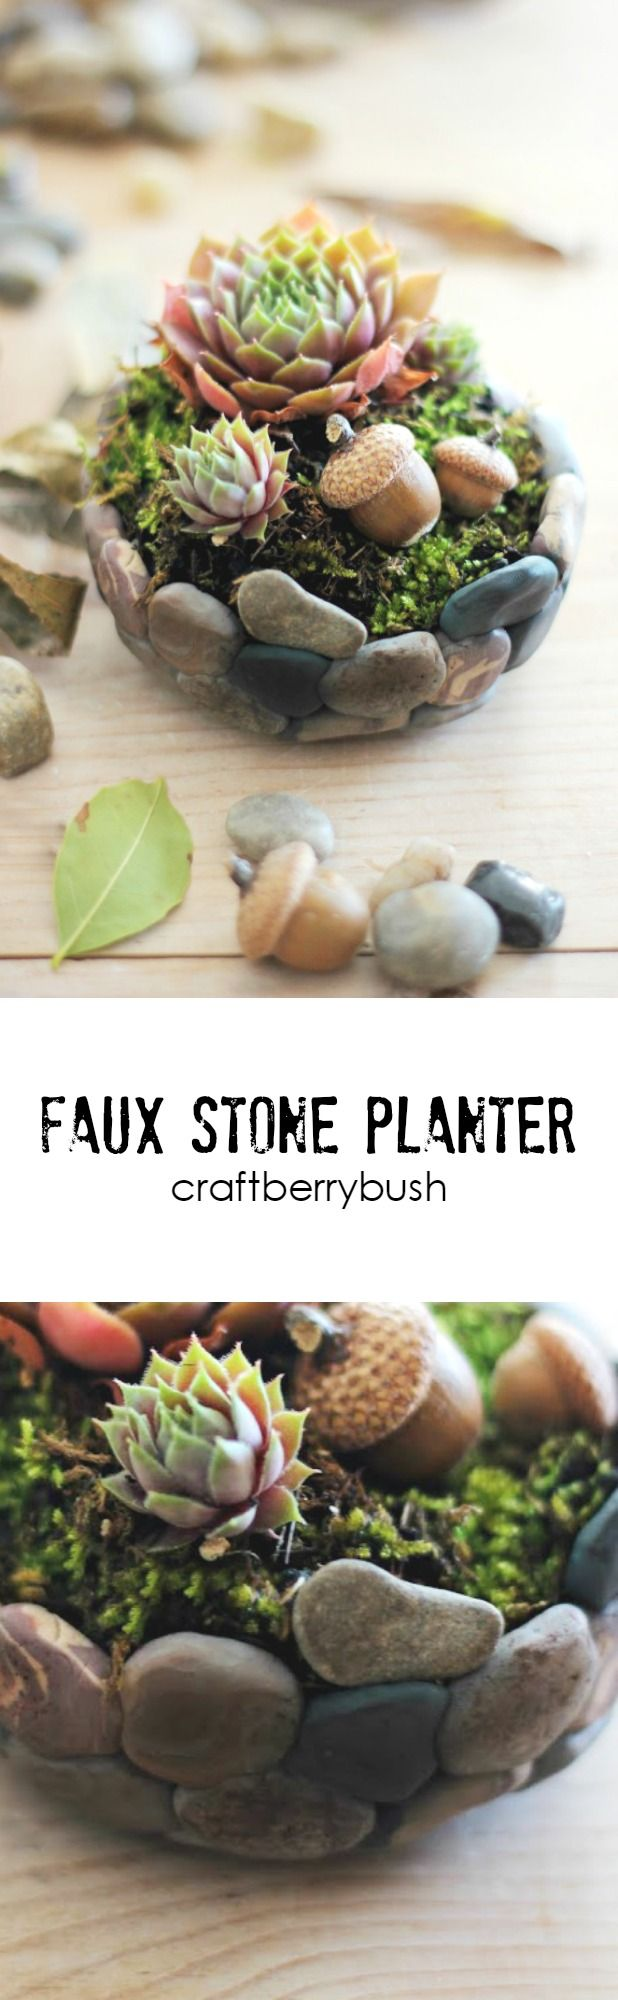 Craftberry Bush | How to make faux sea glass with Polymer Clay | http://www.craftberrybush.com